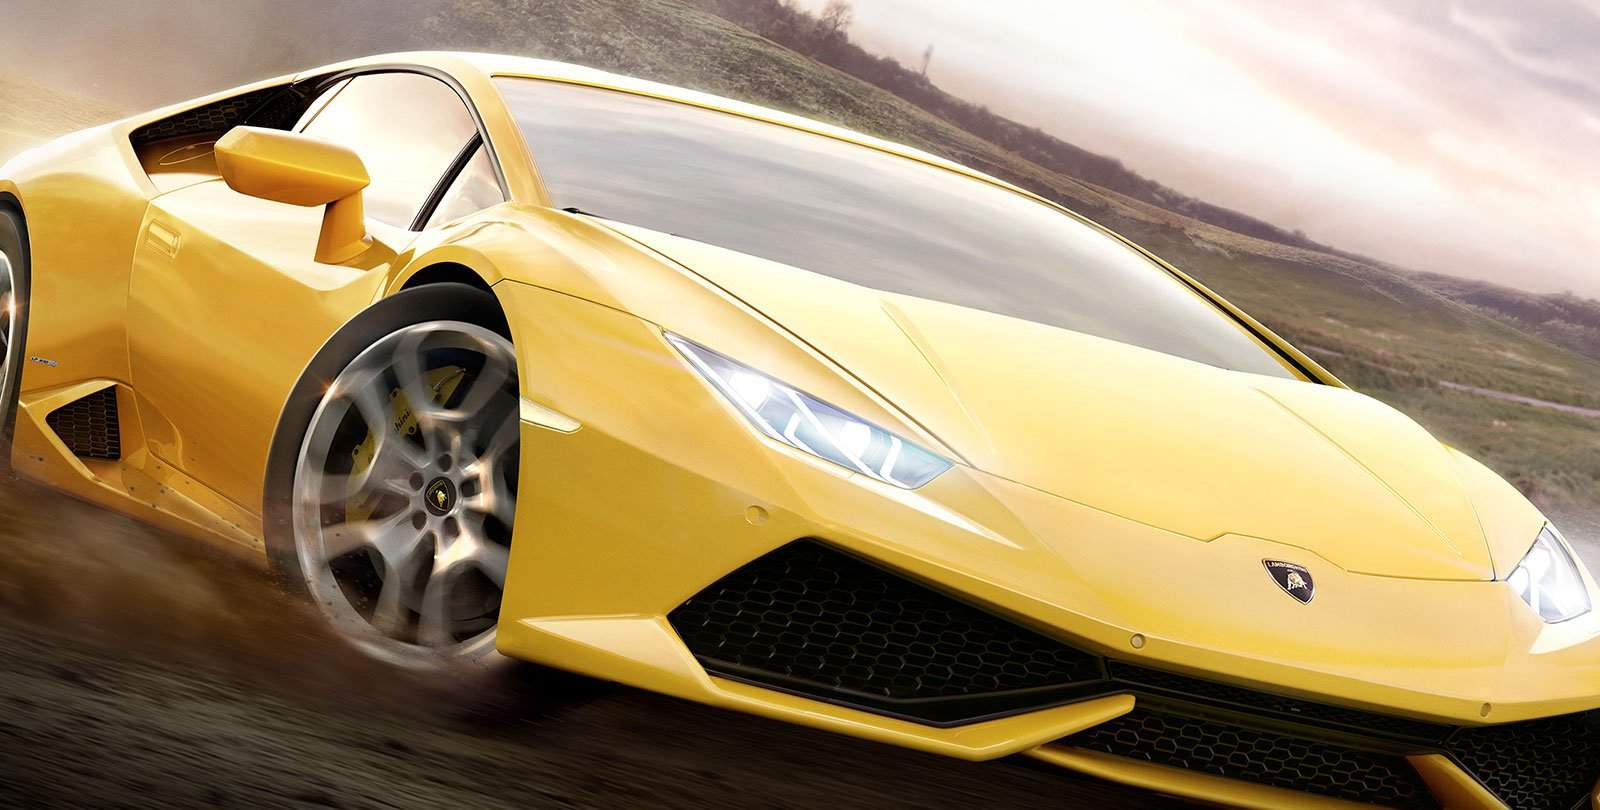 Leave Your Limits with Forza Horizon 2